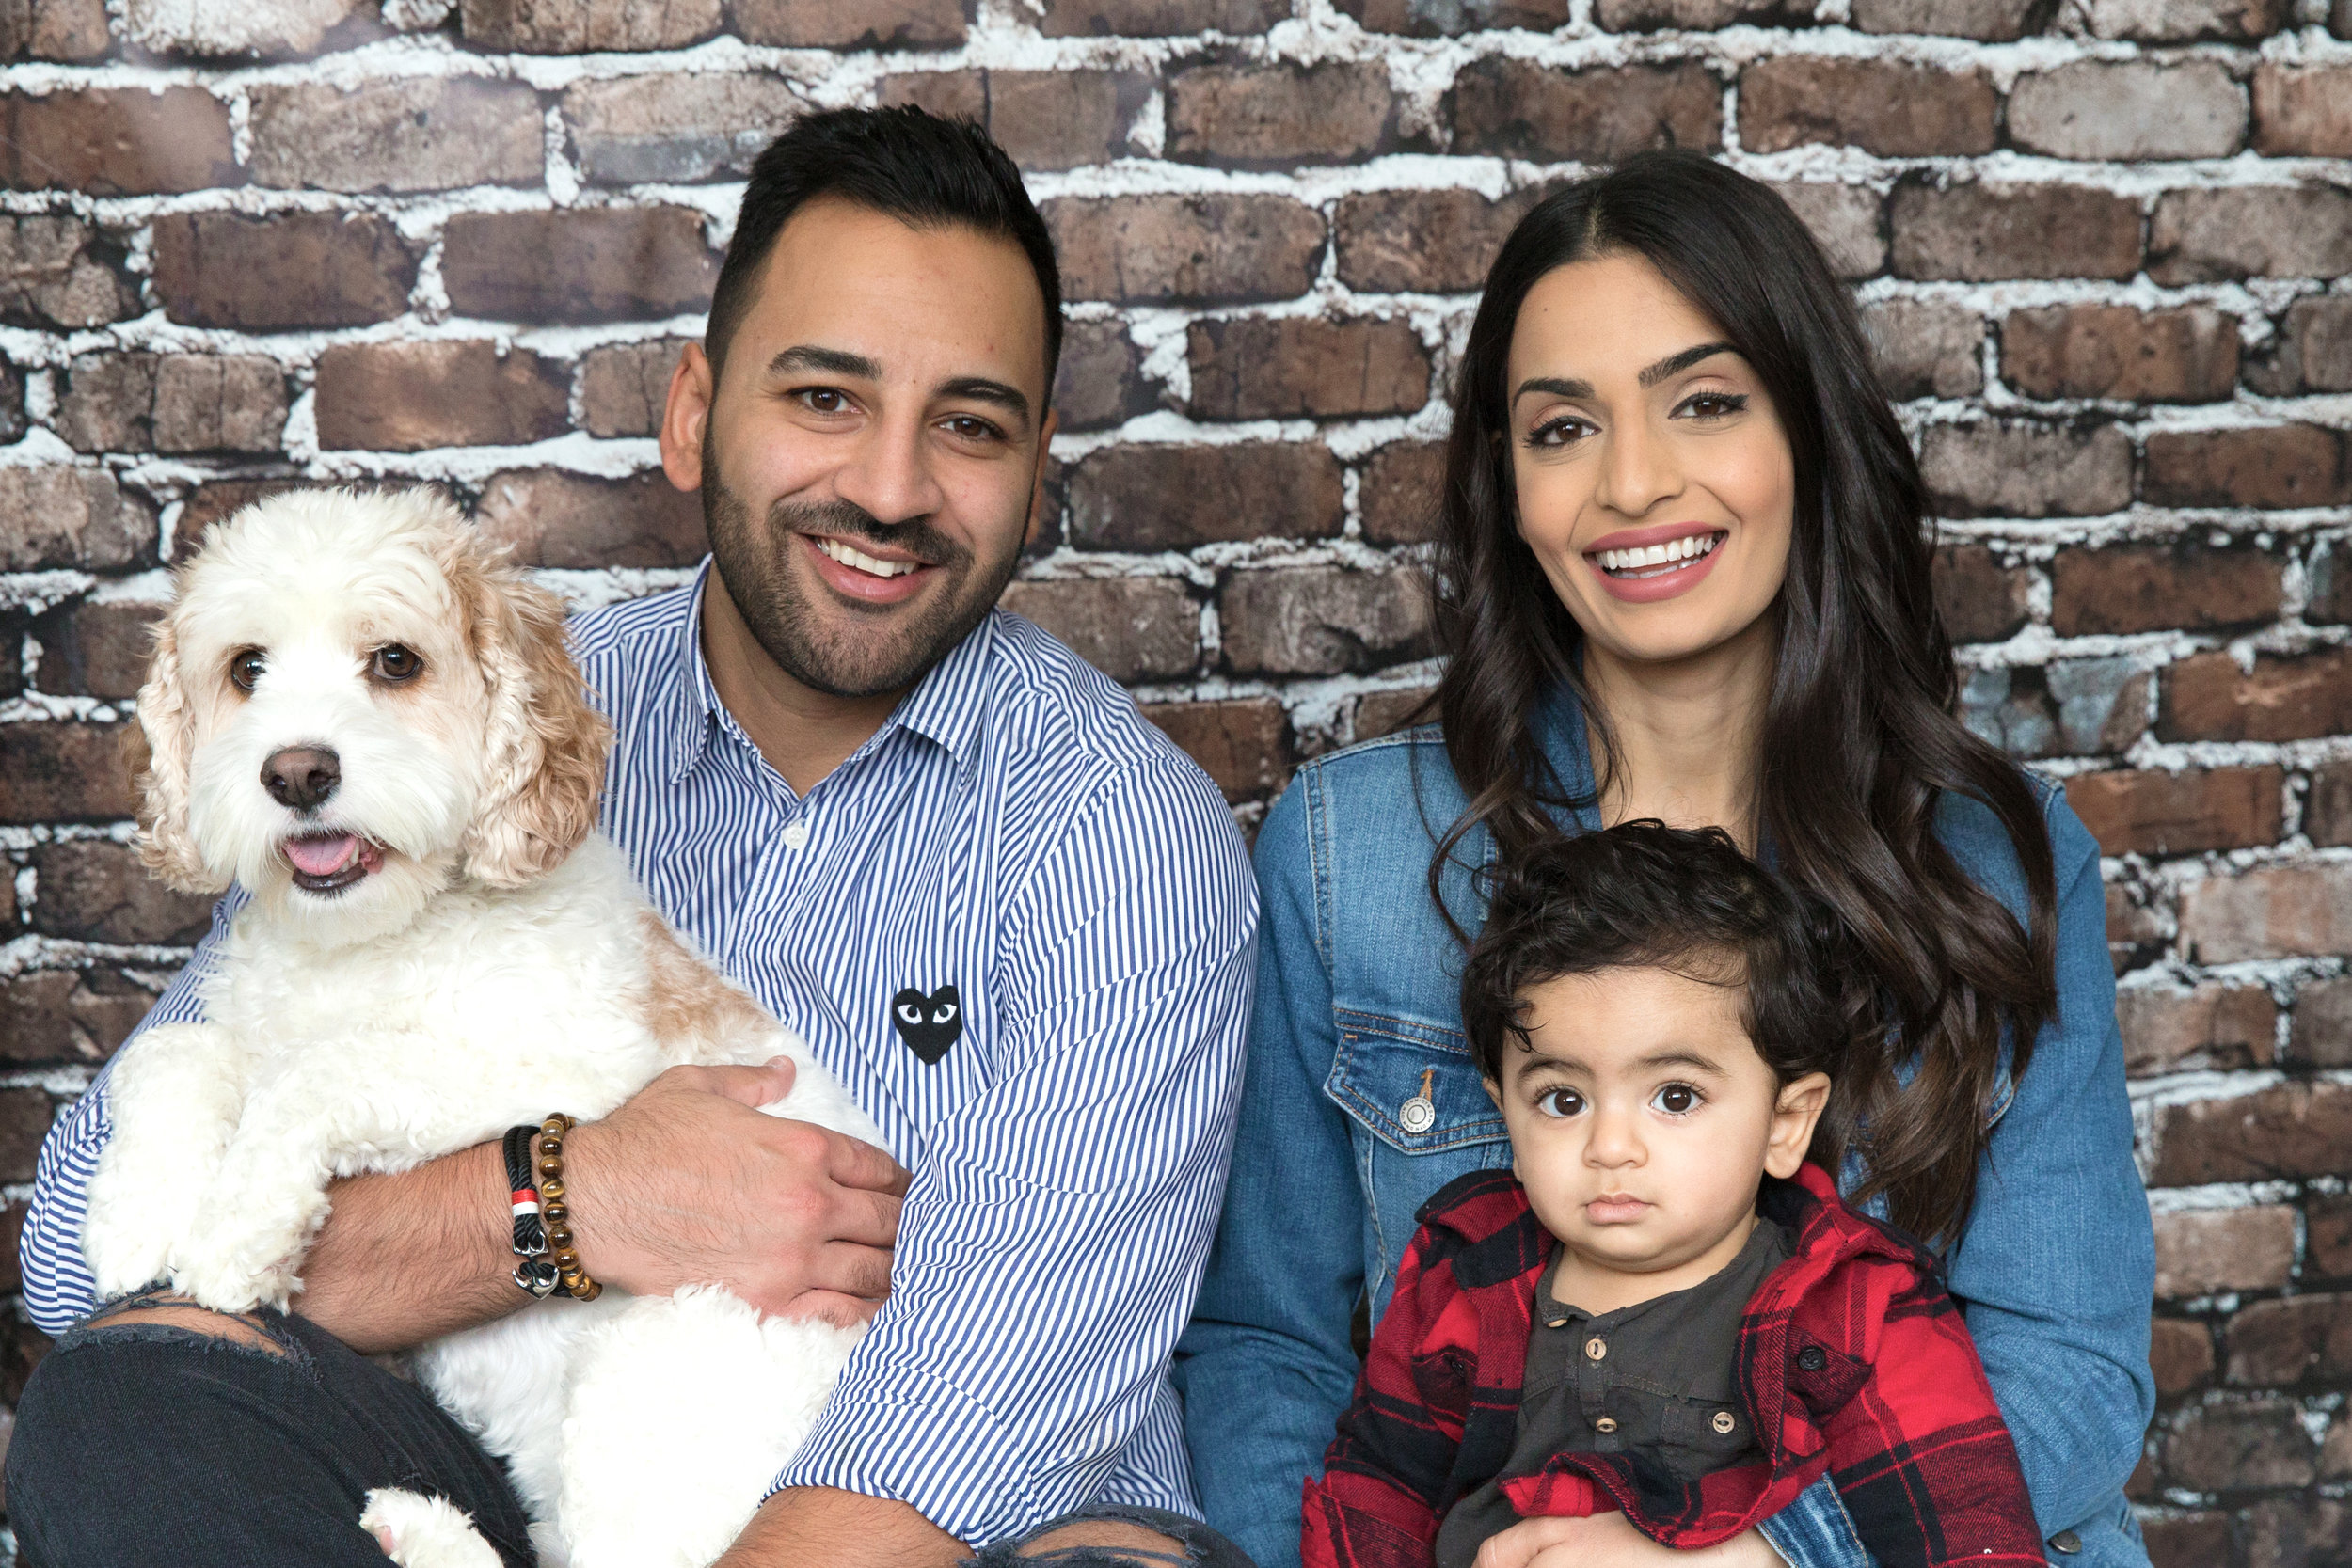 Family portrait. Parents, toddler and a dog. Calgary Family photographer. Milashka Photography